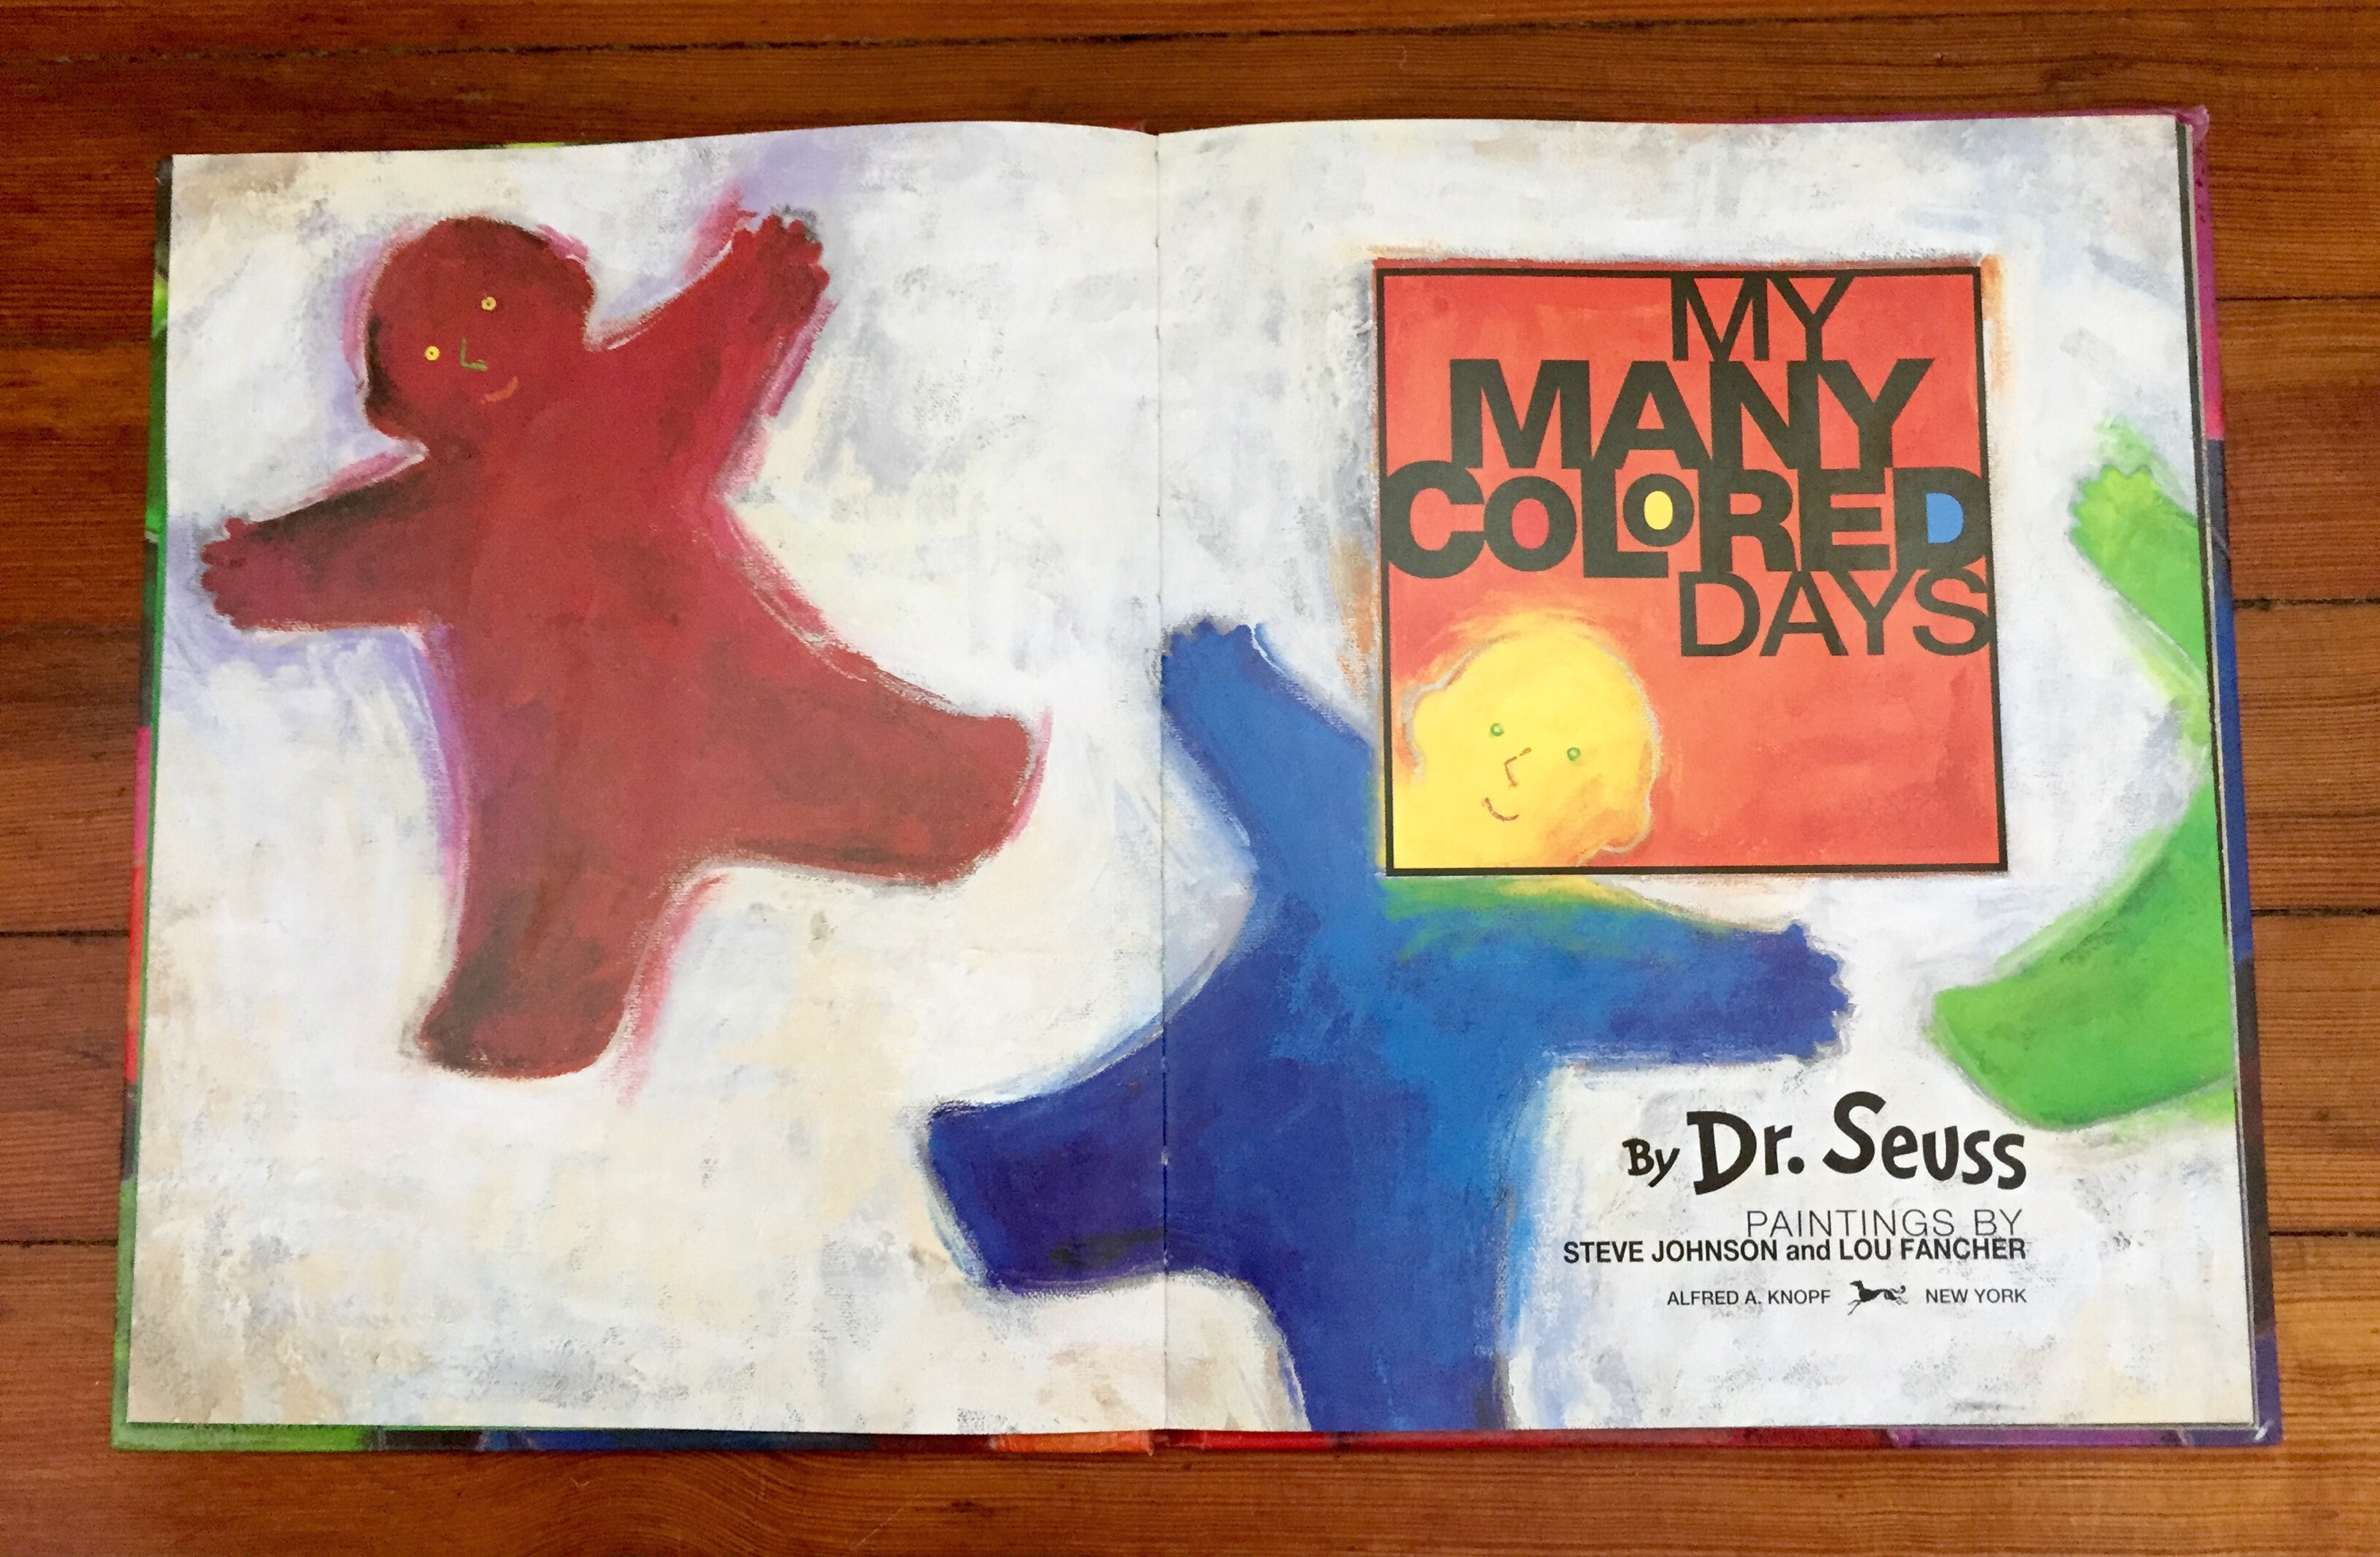 My Many Colored Days – facing the thief